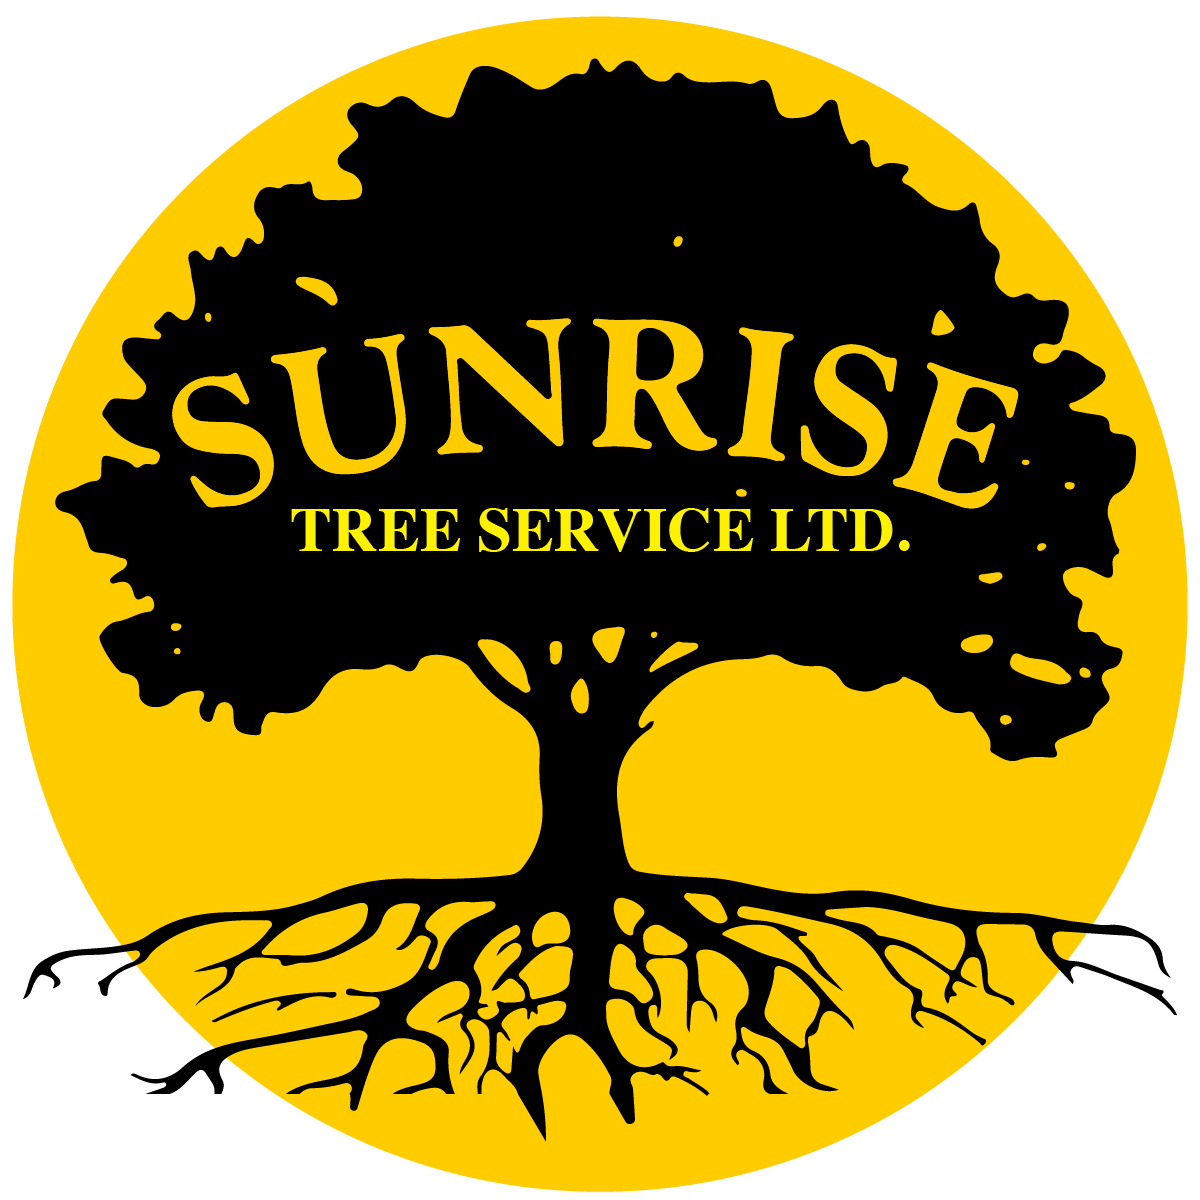 Sunrise Tree Service Ltd. logo